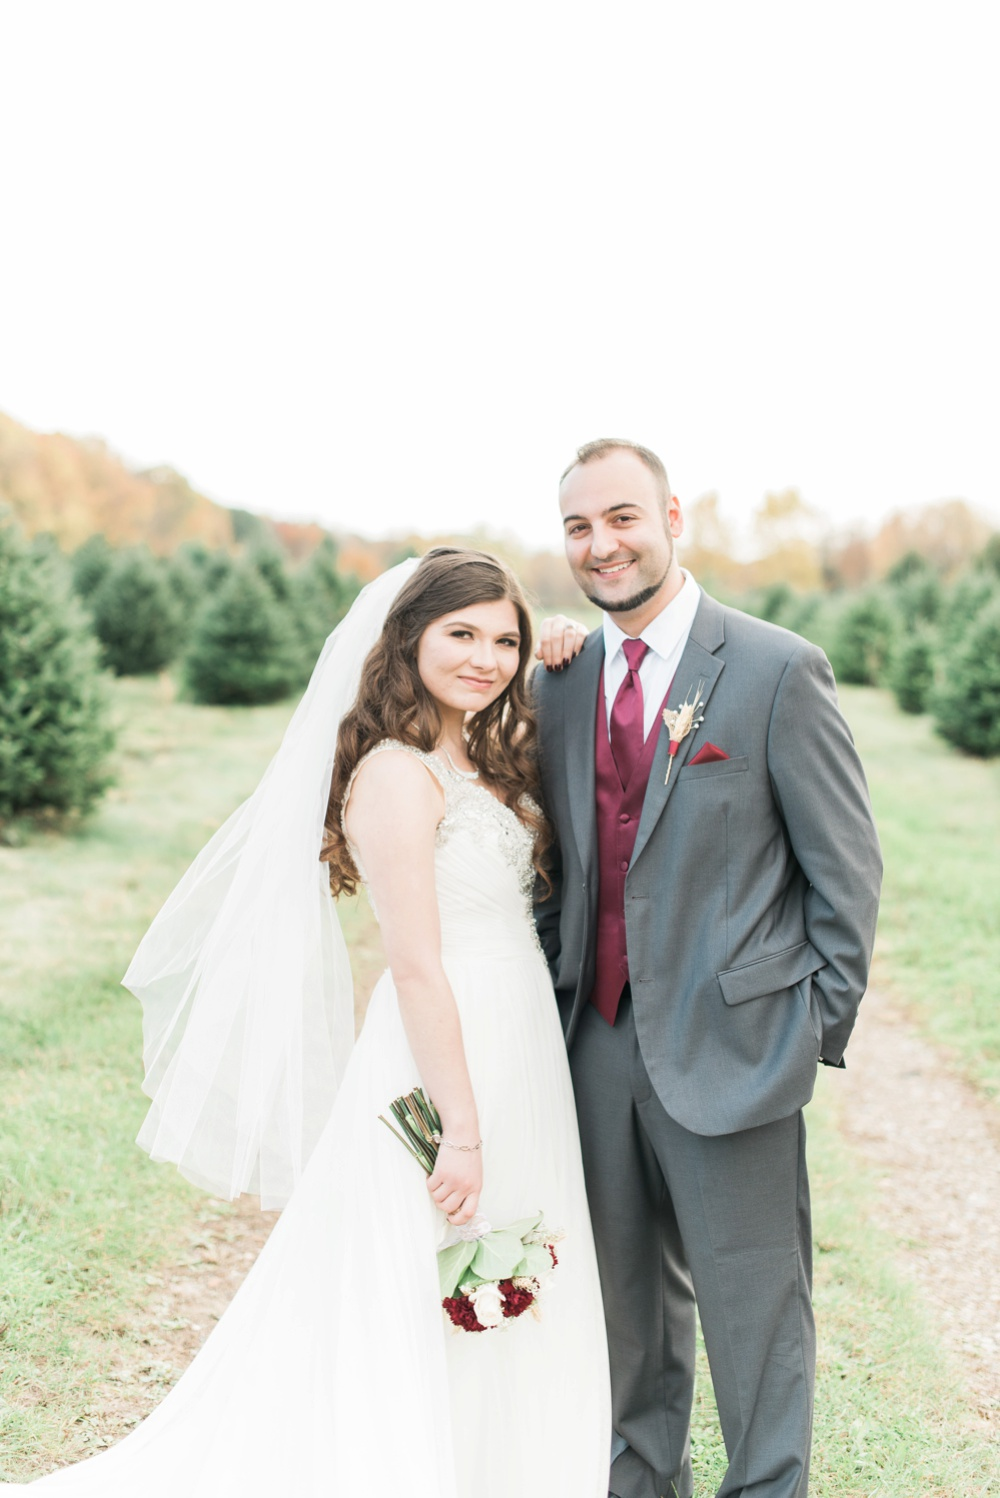 ricciardis-tree-farm-wedding-wadsworth-ohio-lauren-ryan_0120.jpg